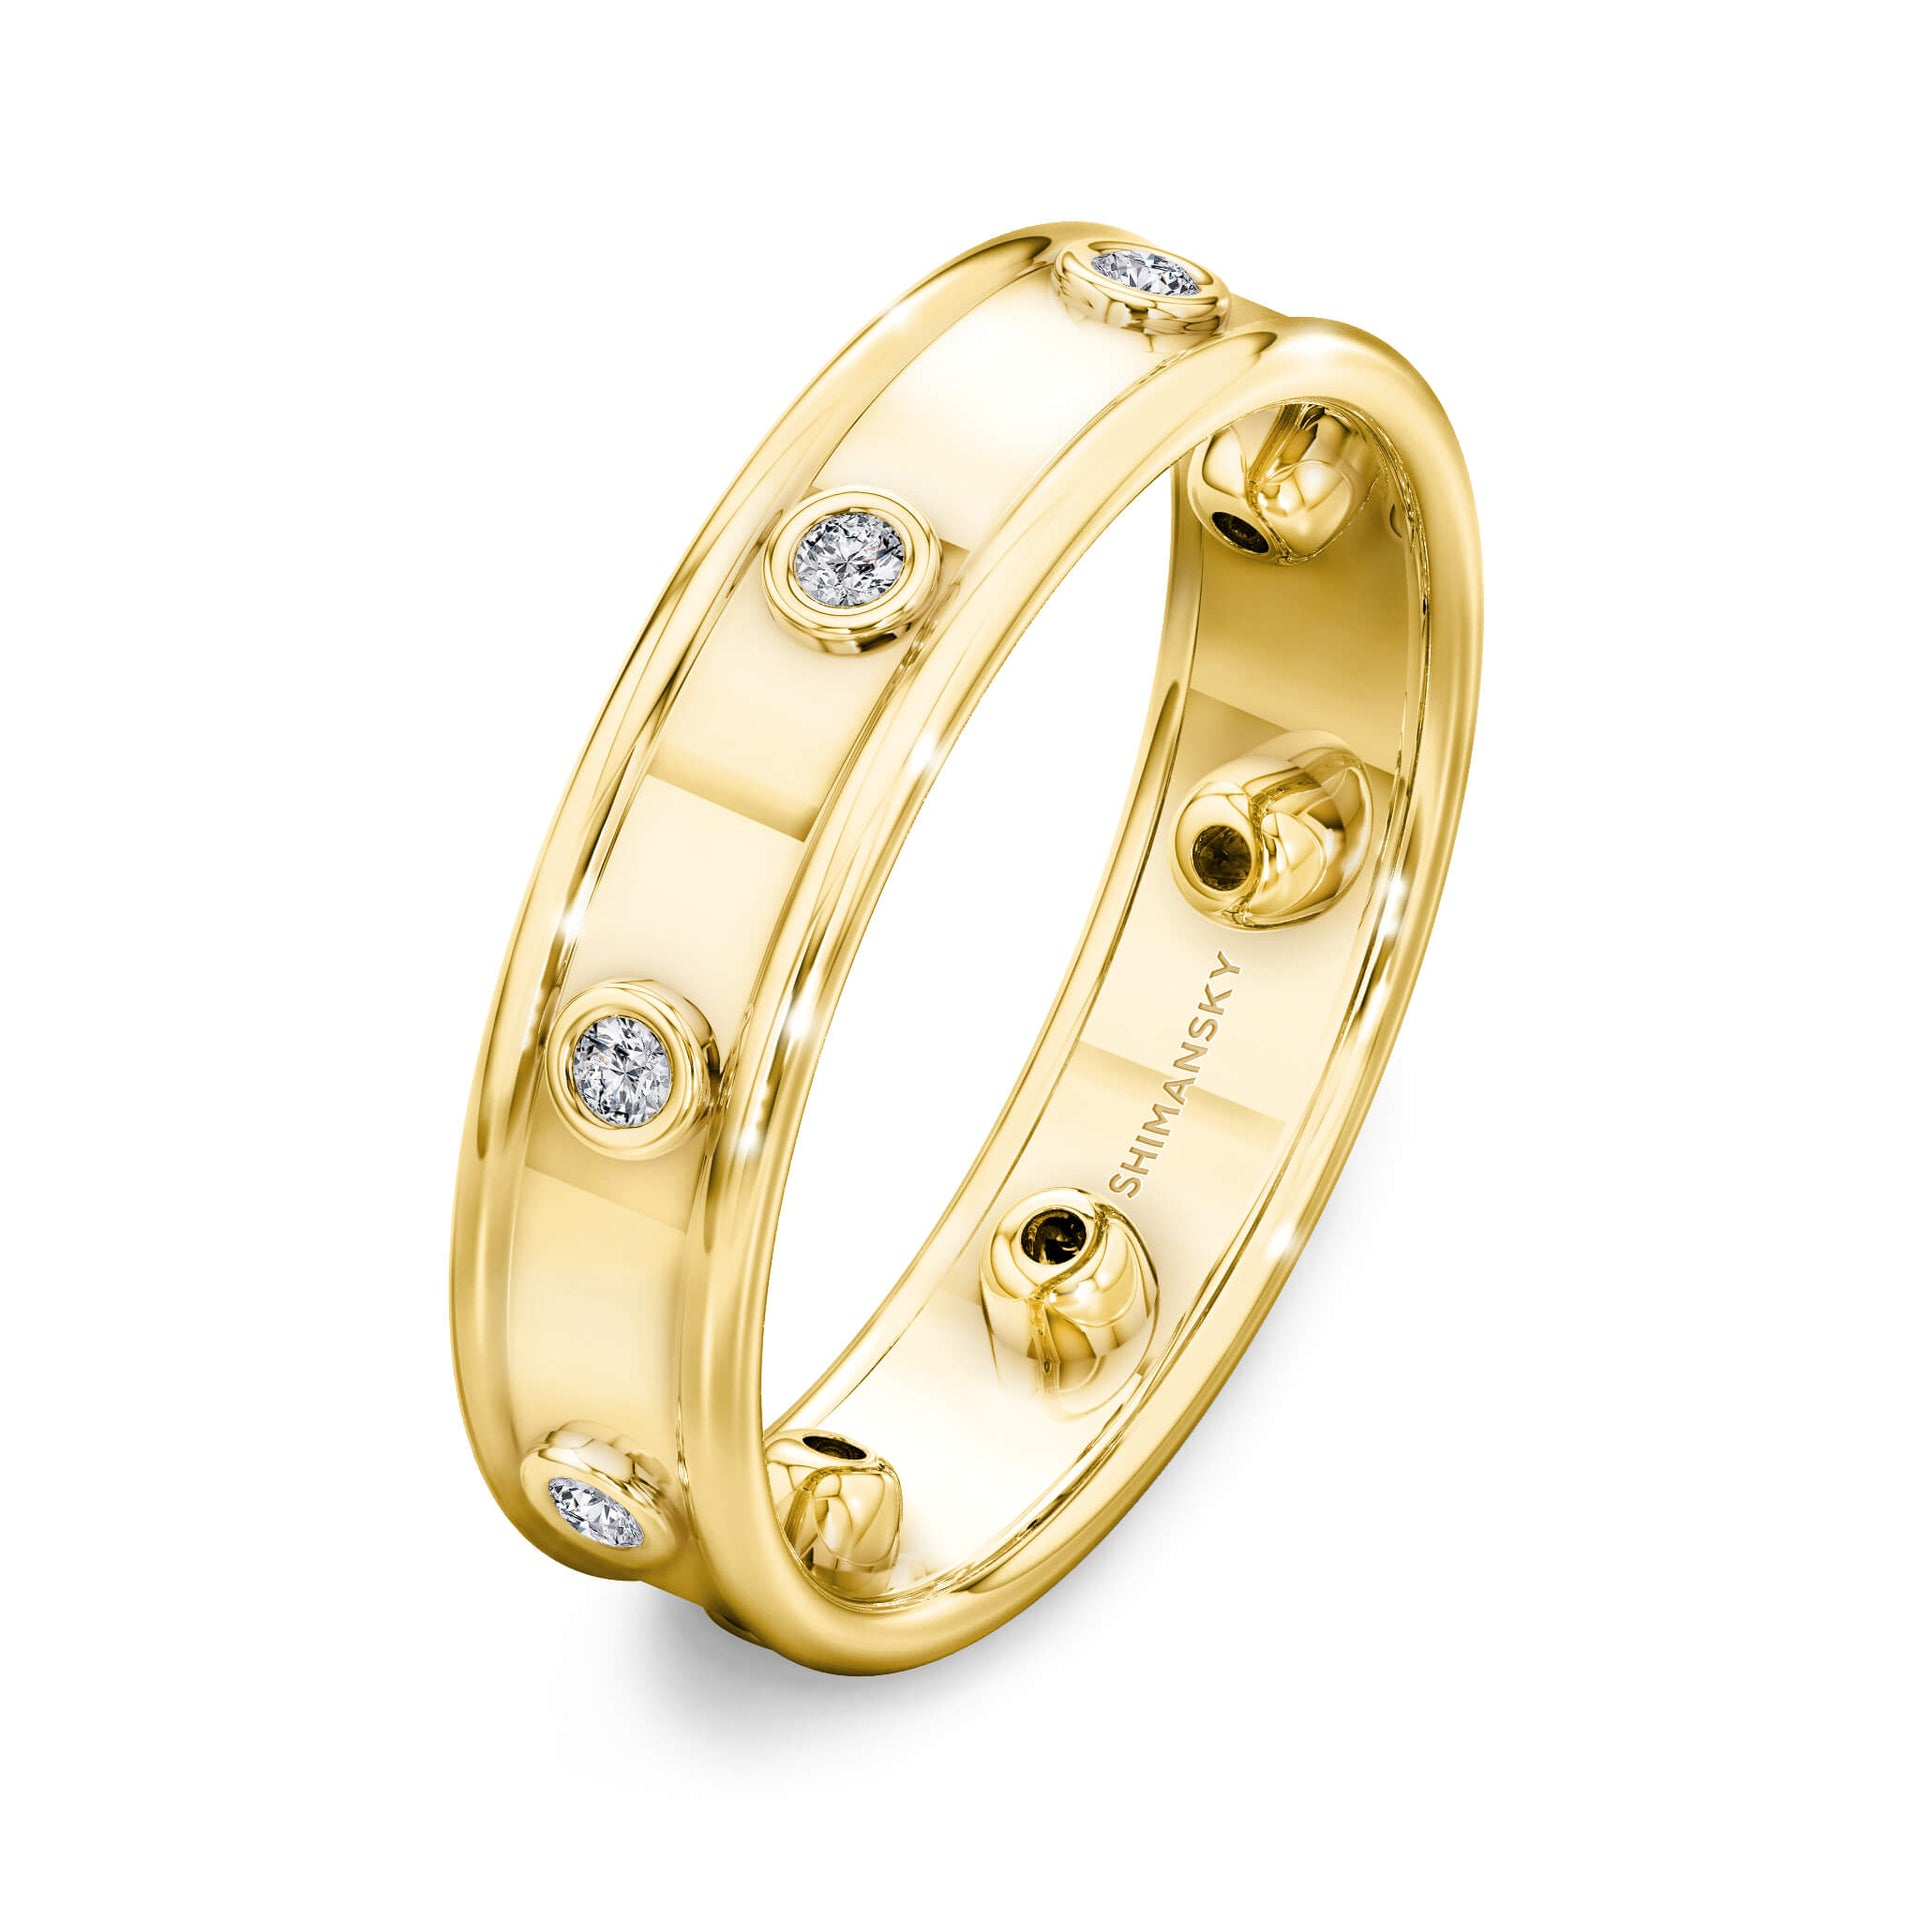 Caesar Classic Raised Edge Full Eternity Diamond Ring in 18K Yellow Gold 3D View